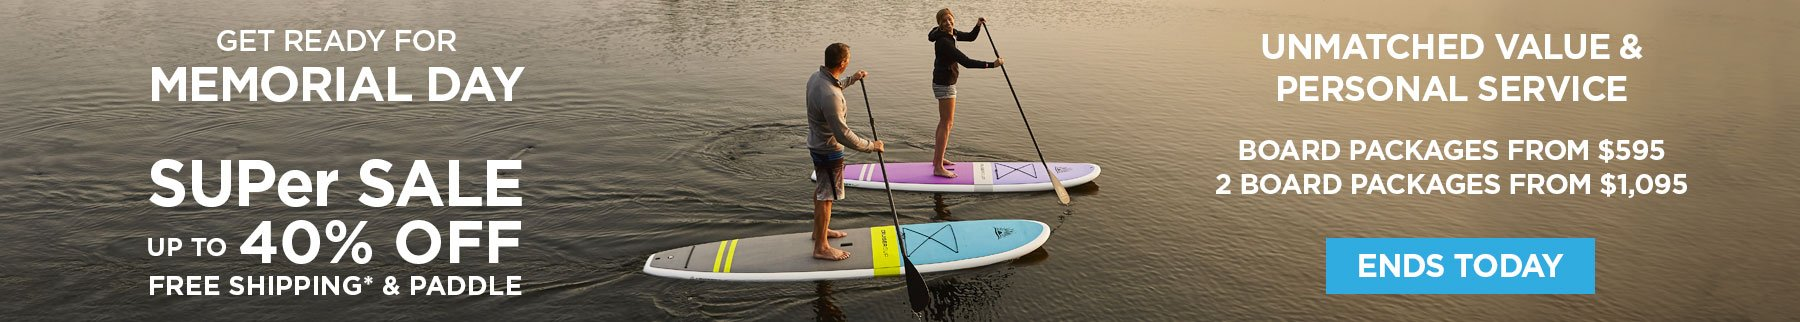 Spring SUPer Sale - Up to 40% Off Board Packages from $595